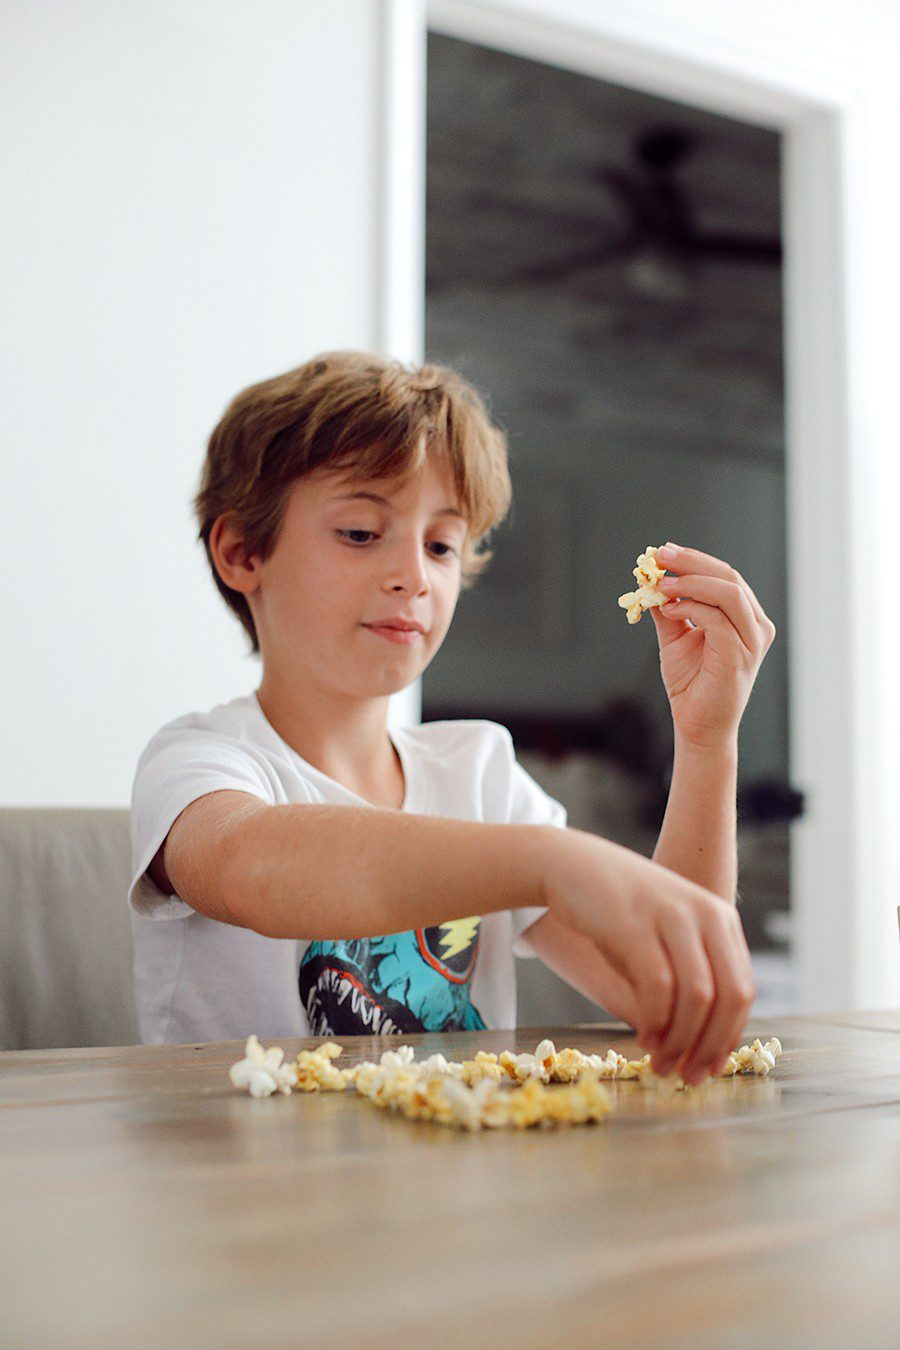 Popcorn charades and more popcorn games for family game night! | Family Fun Night by popular Florida lifestyle blog, Fresh Mommy Blog: image of a boy making a shape on a table out of popcorn.